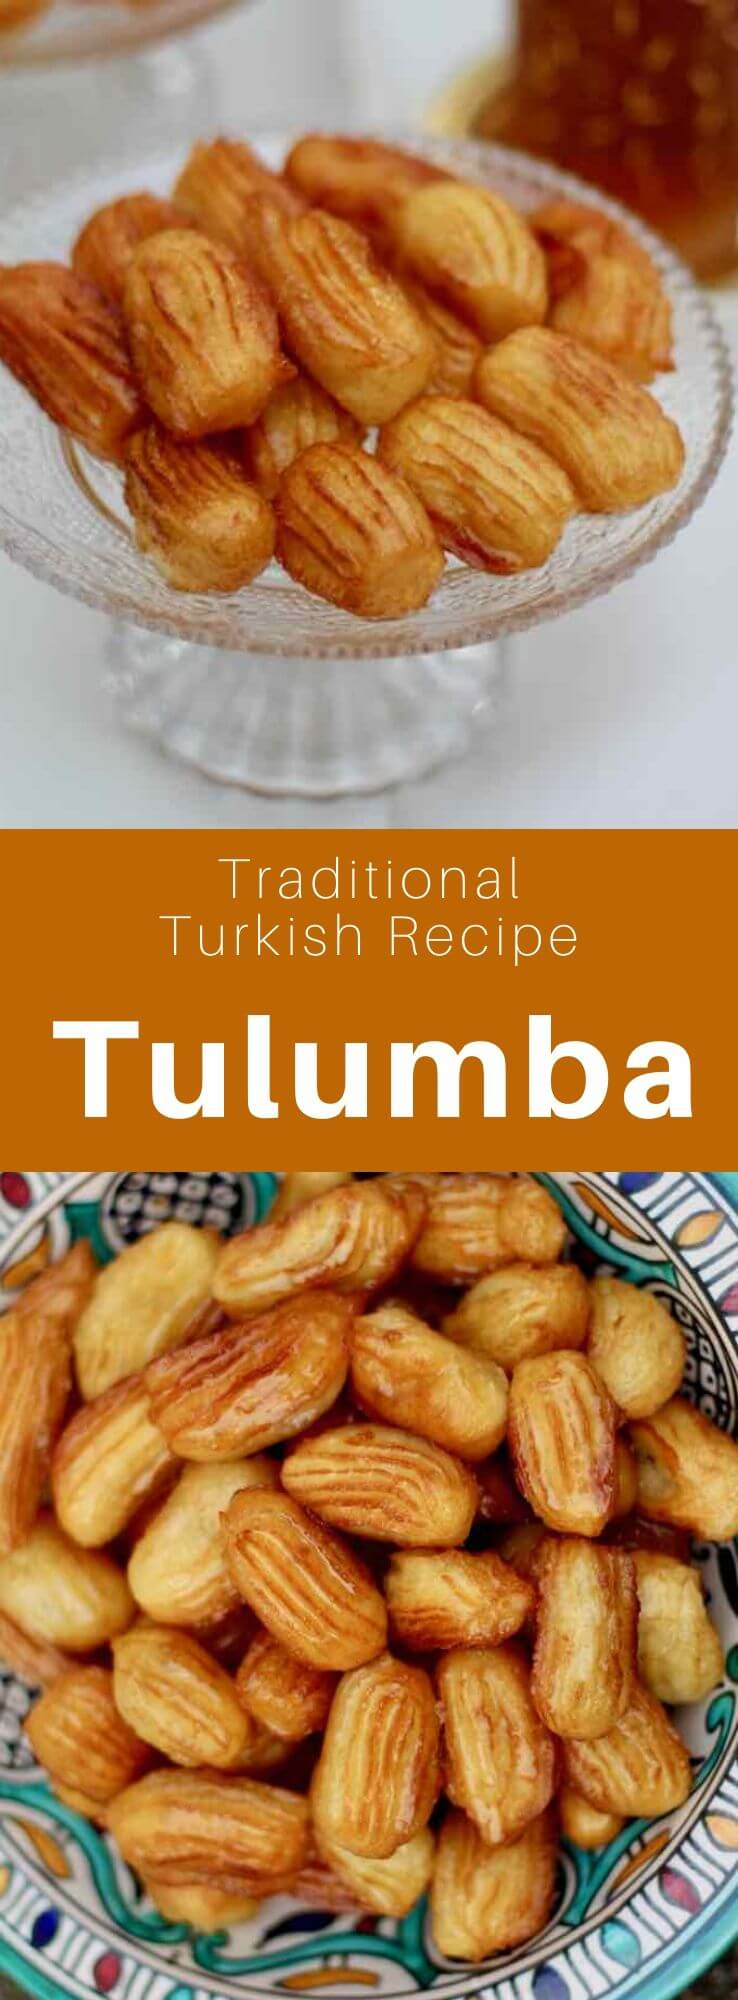 Tulumba is a traditional Turkish dessert made with thick fried choux pastry sticks which are dipped in a delicious sugar syrup. #Turkey #Turkish #TurkishRecipe #TurkishFood #TurkishCuisine #WorldCuisine #196flavors